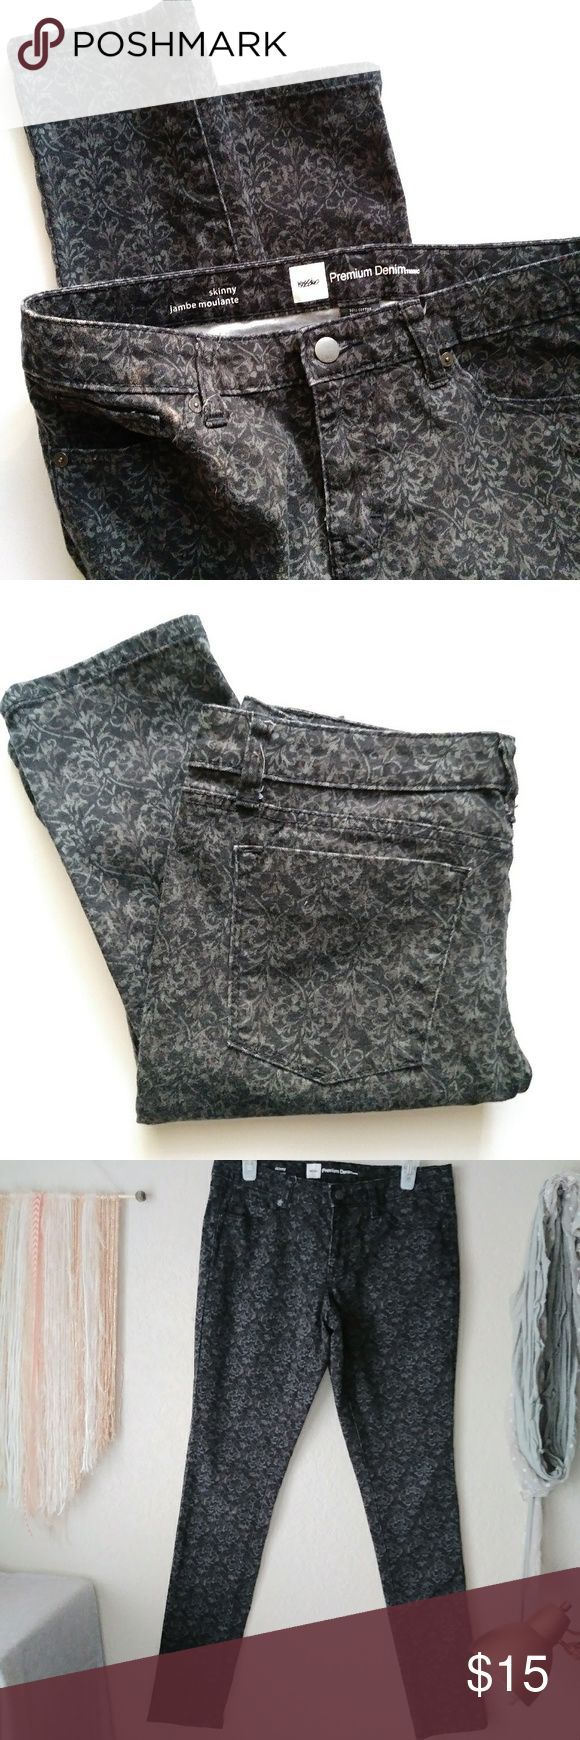 """Mossimo Womens Floral Black Jeans Size 8 Fit 3 Mossimo black floral jeans from Target. Pre-owned in very good condition. Like NEW.   Measurements Laying Flat 💜Waist 16"""" 💜Length 39"""" 💜Inner Seam 30""""  ❤If you have any questions please write it in the comments and I'll get back to you as soon as possible. Mossimo Supply Co Jeans Skinny"""